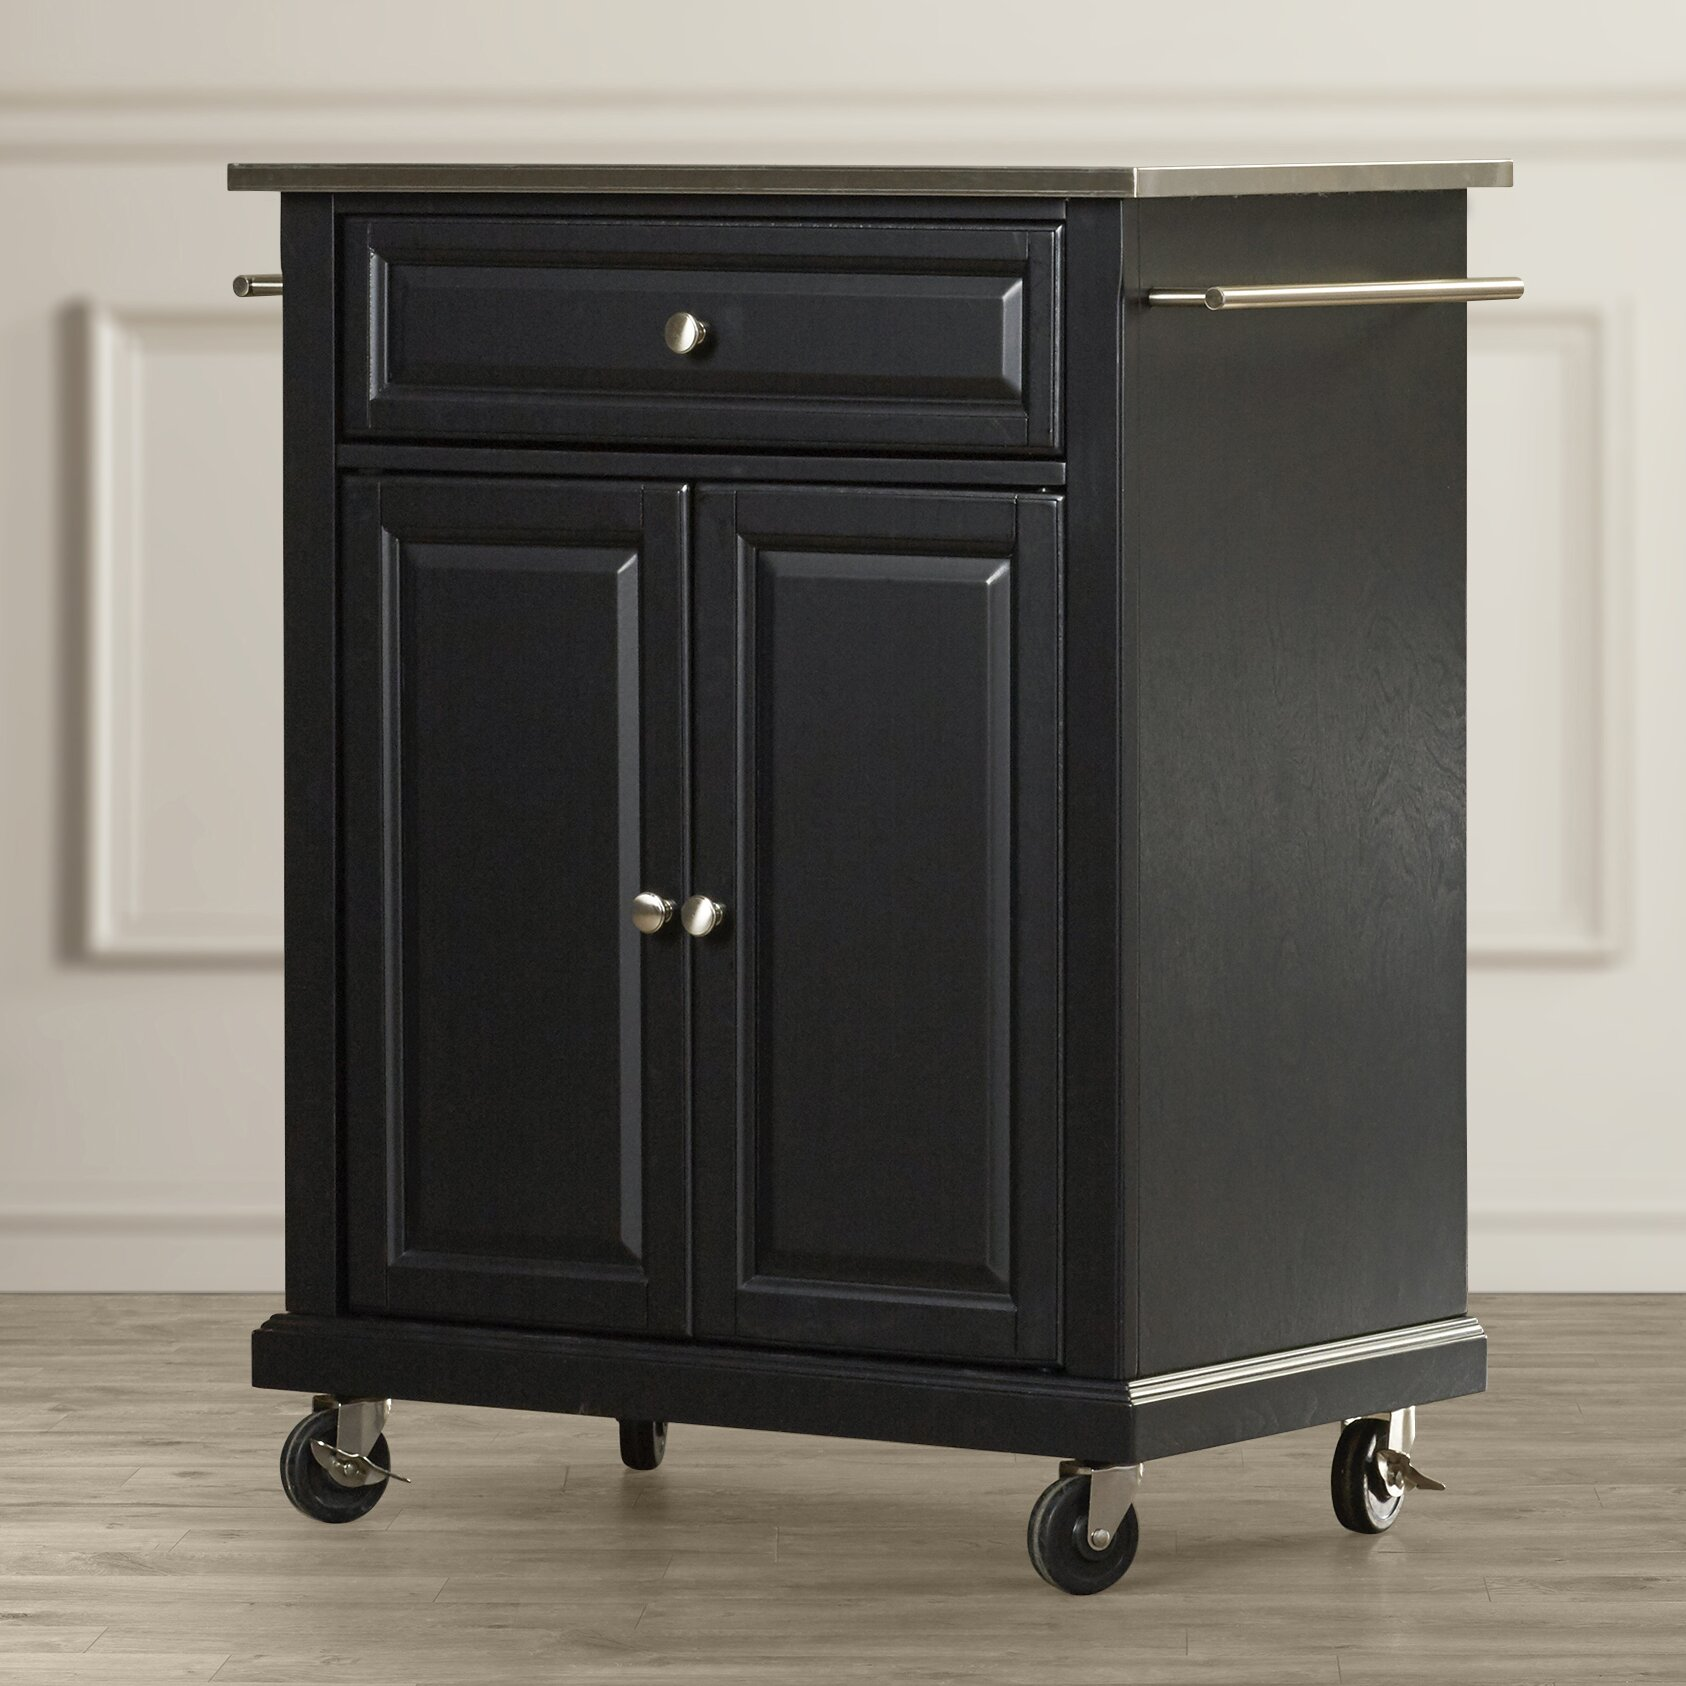 Stainless Kitchen Cart: Charlton Home Bainbridge Kitchen Cart With Stainless Steel